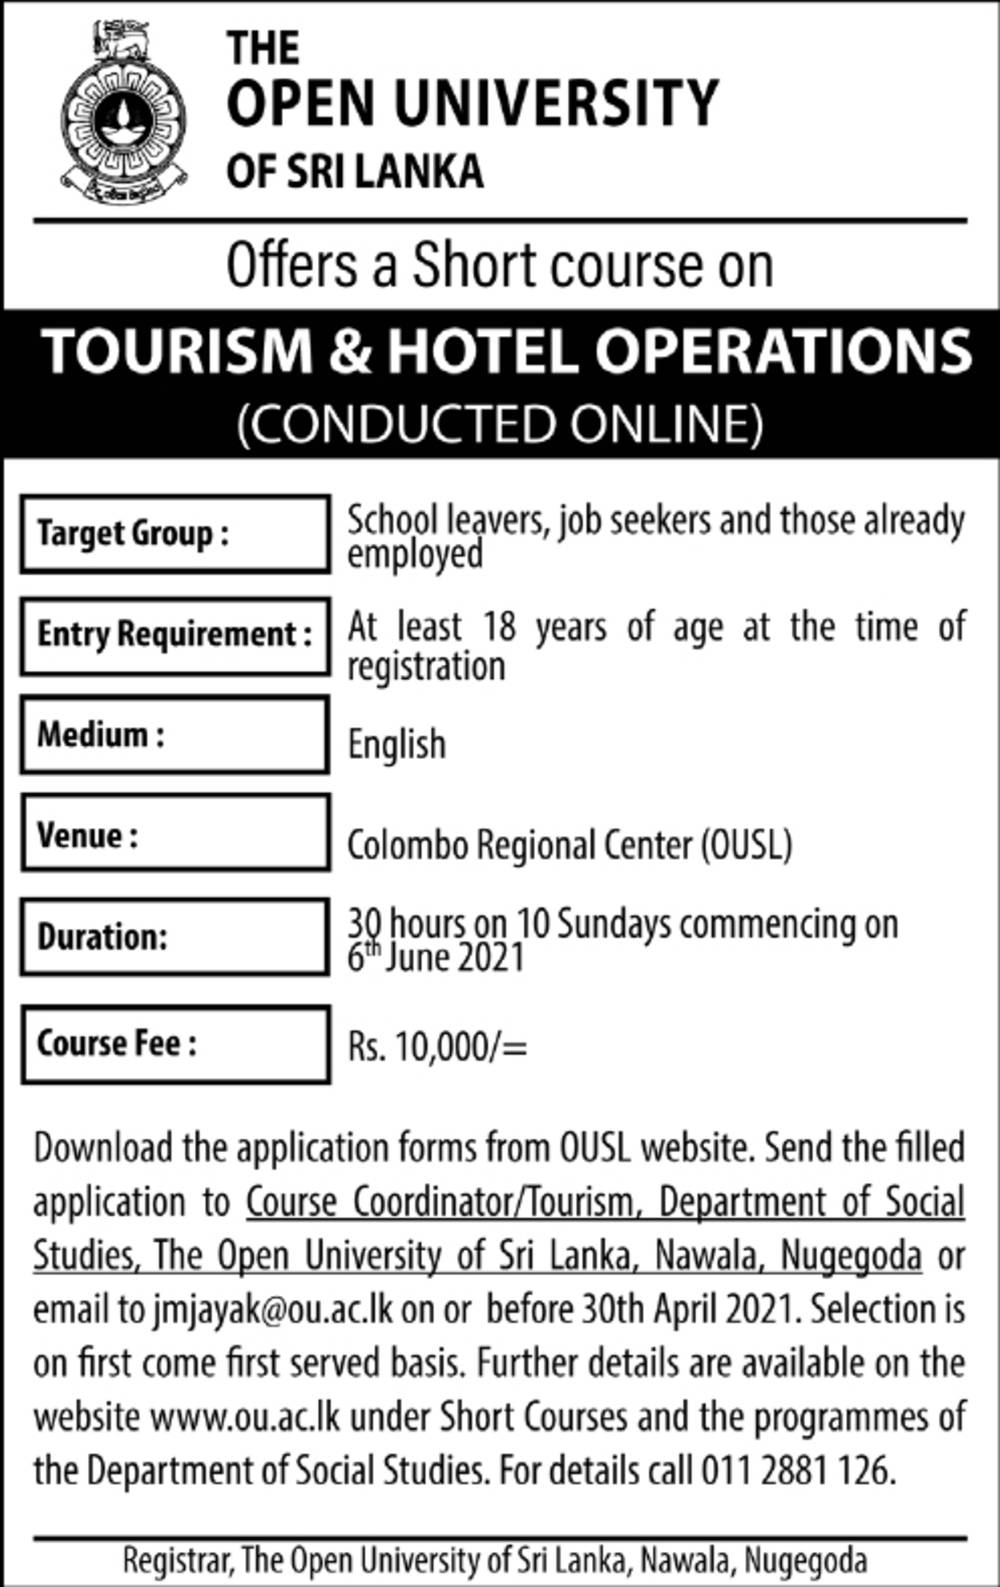 Offers a Short Course on Tourism & Hotel Operations - The Open University of Sri Lanka